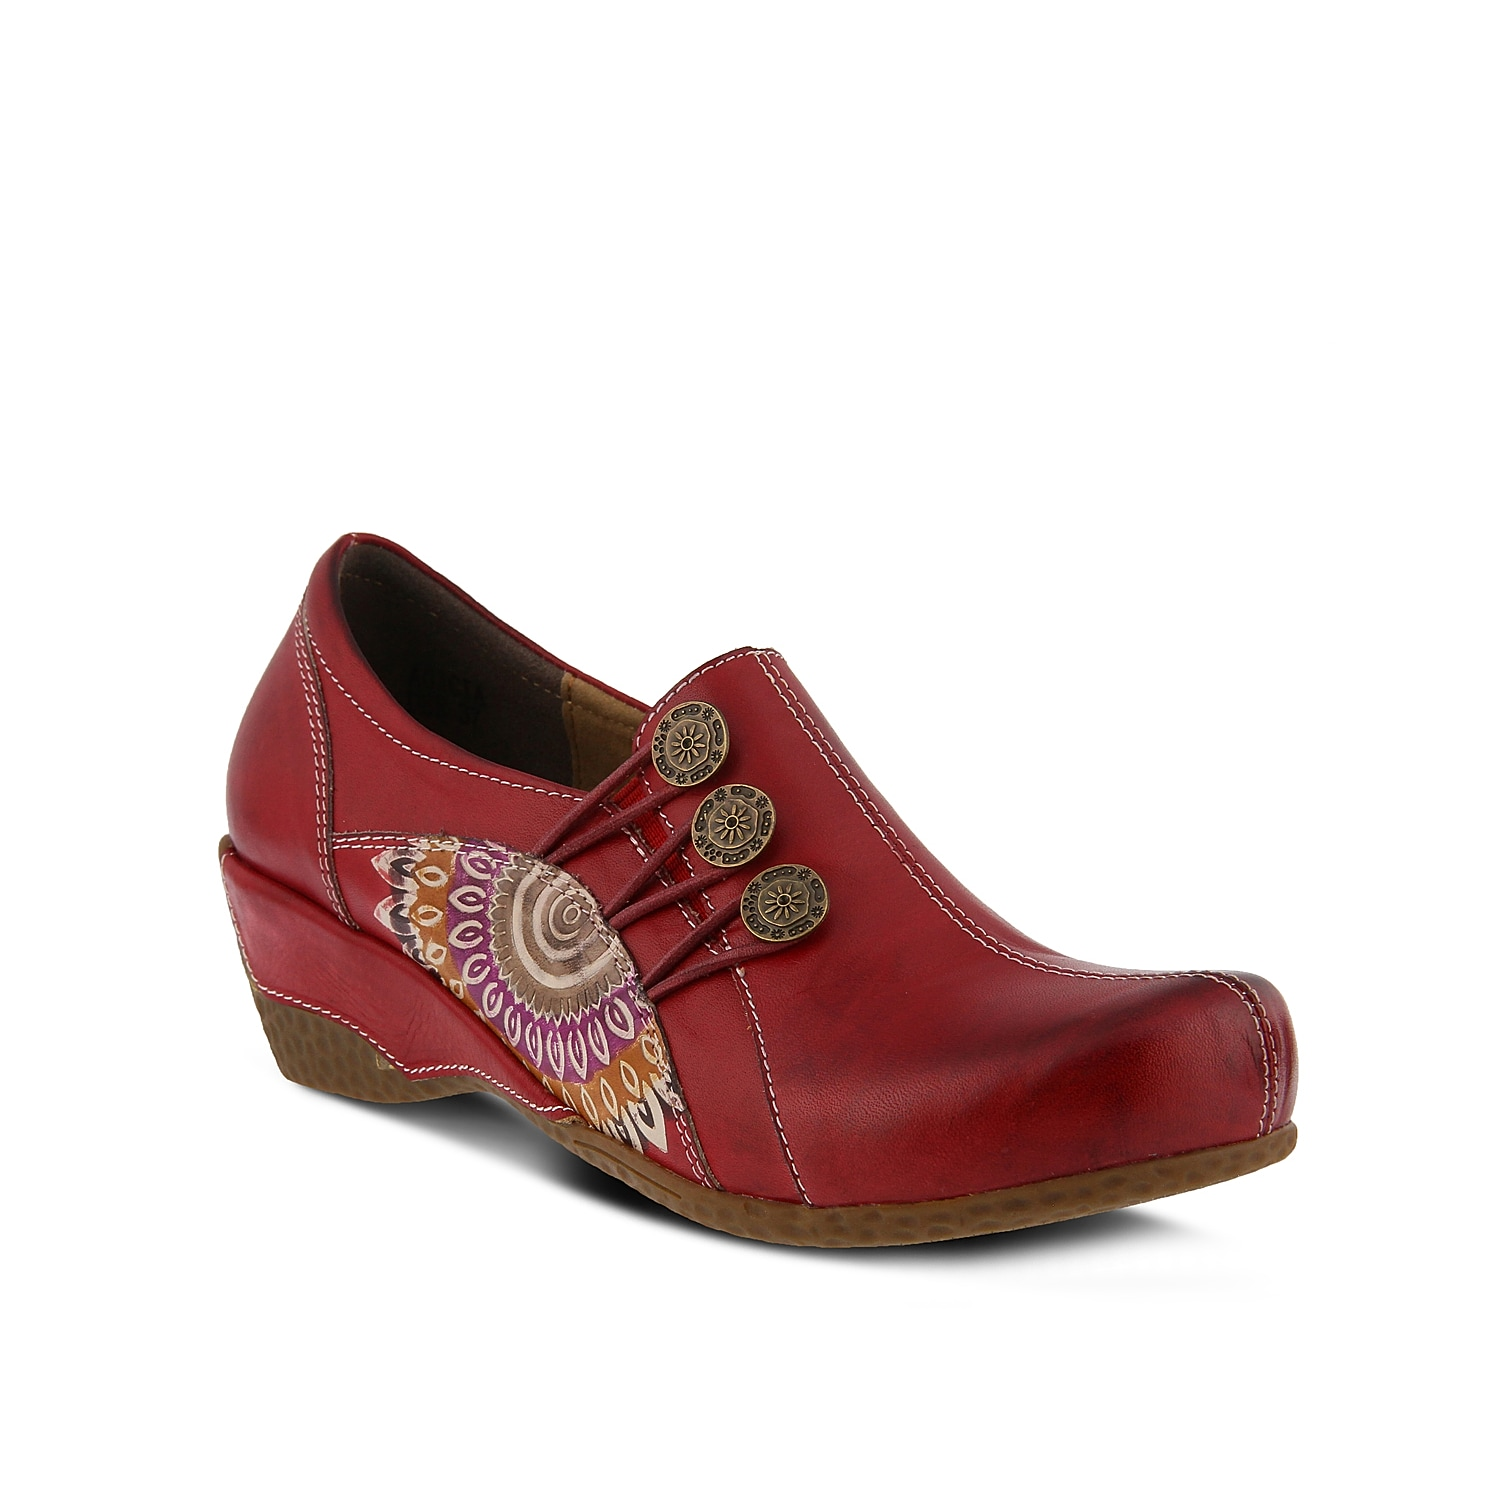 Add an artful touch to your look with the Agacia slip-on from L\\\'Artiste by Spring Step. These clogs feature a smooth leather construction and hand-painted accents for extra intrigue.